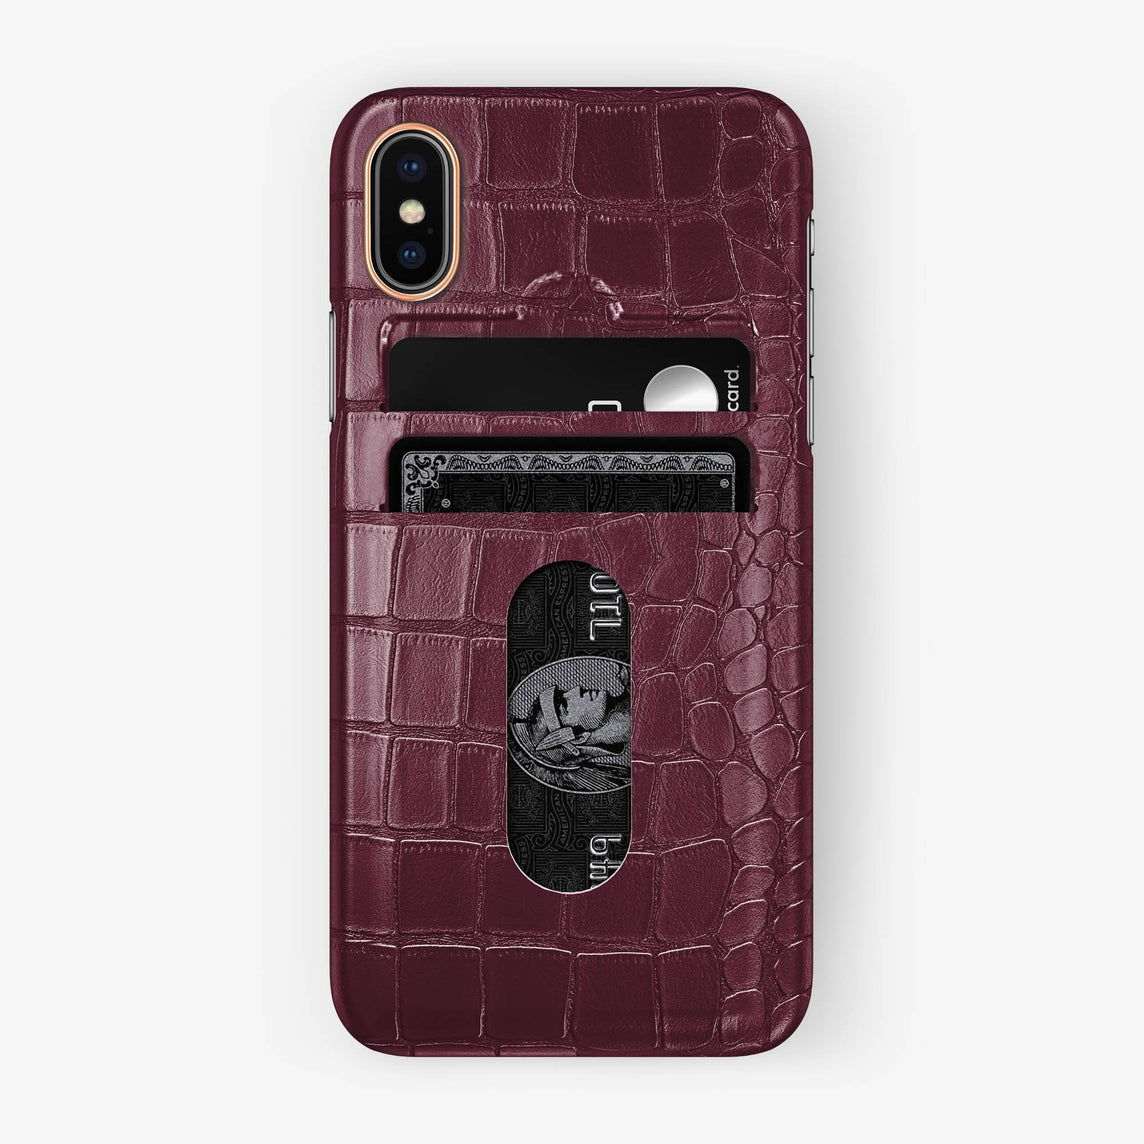 Alligator Card Holder Case iPhone X/Xs | Burgundy - Rose Gold - Hadoro